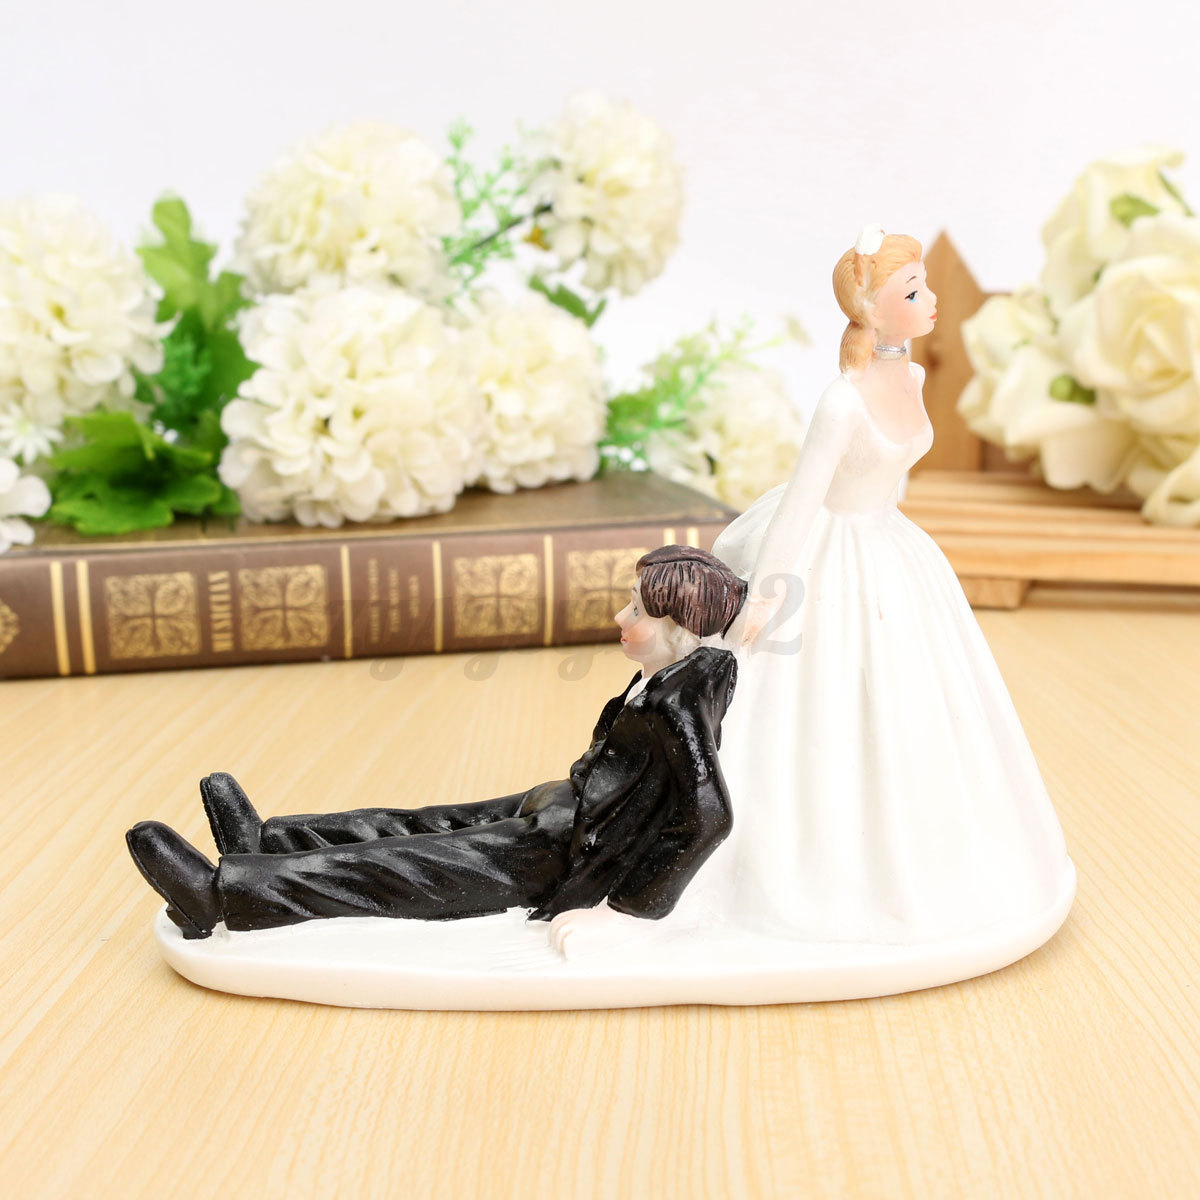 romantic wedding cake toppers figure bride and groom couple bridal decoration ebay. Black Bedroom Furniture Sets. Home Design Ideas